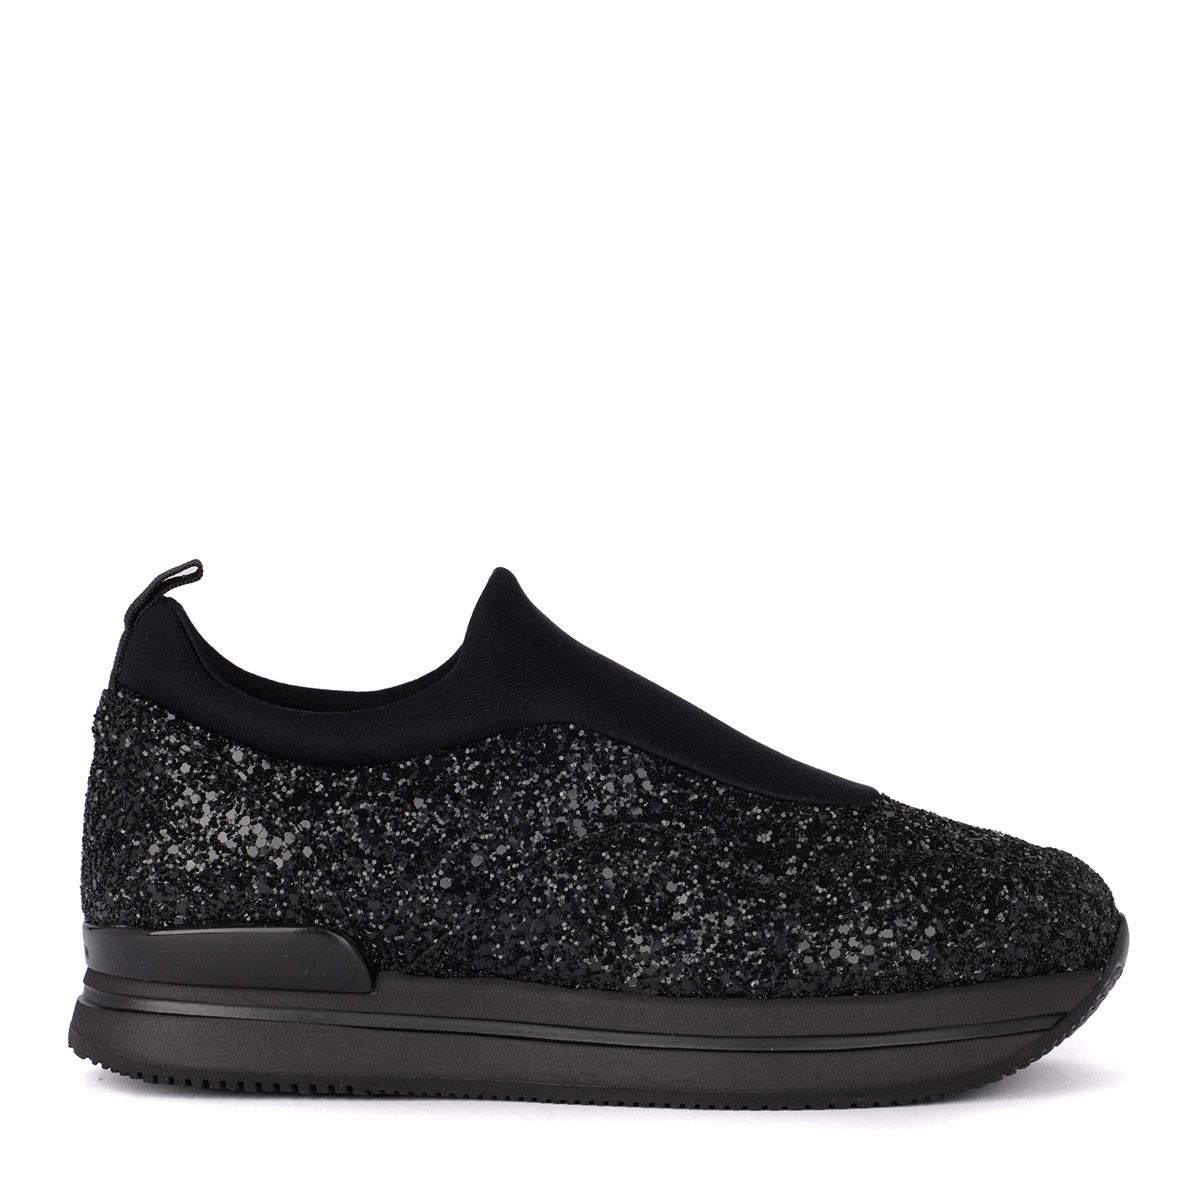 H222 Black Slip On With Glitter And Scuba Effect Fabric. in Nero